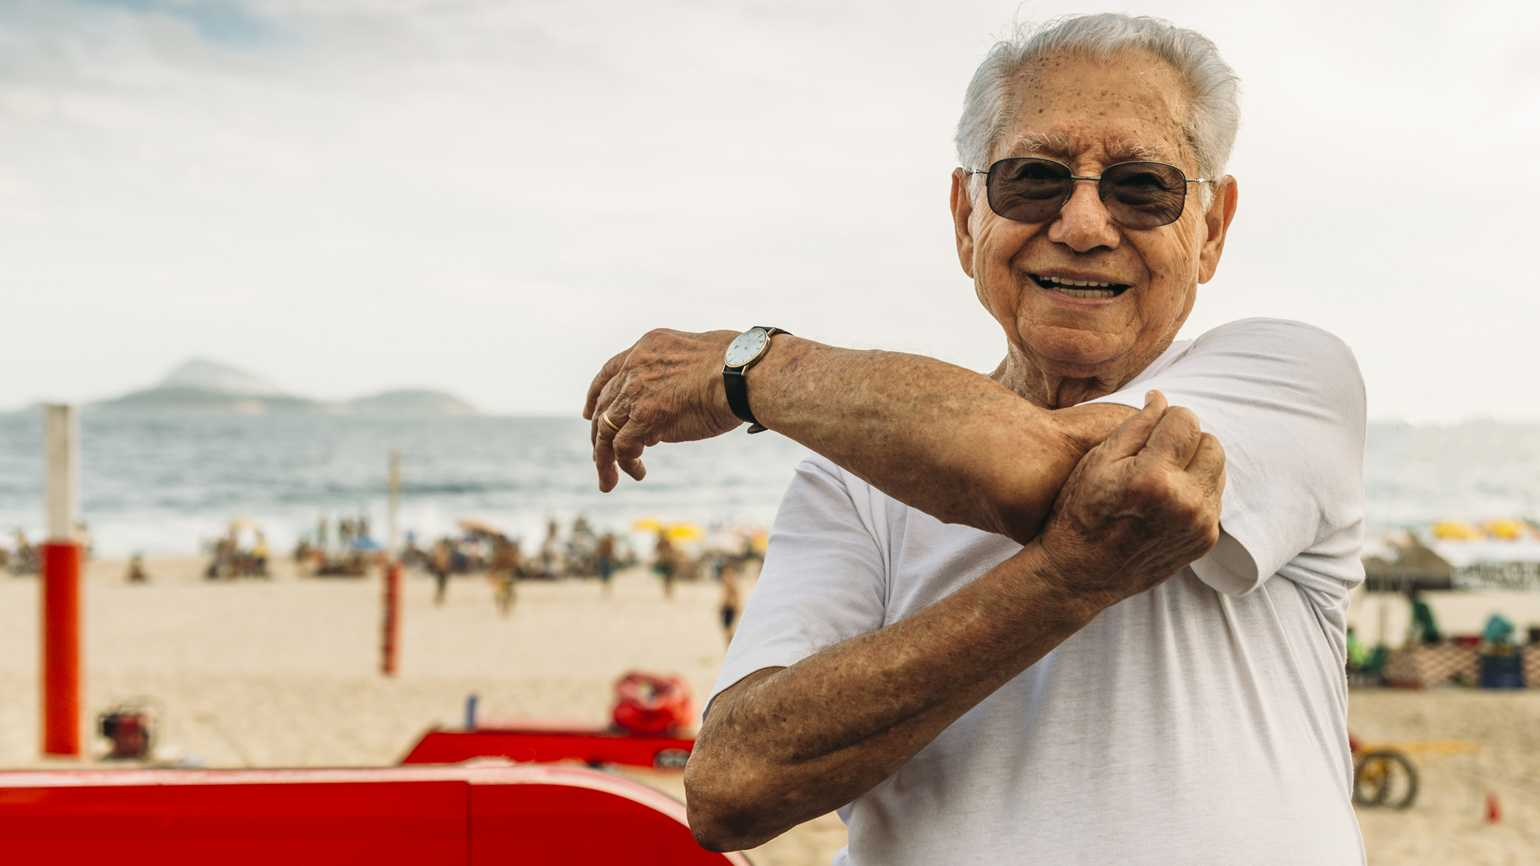 8 Forms of Exercise That Benefit People with Dementia